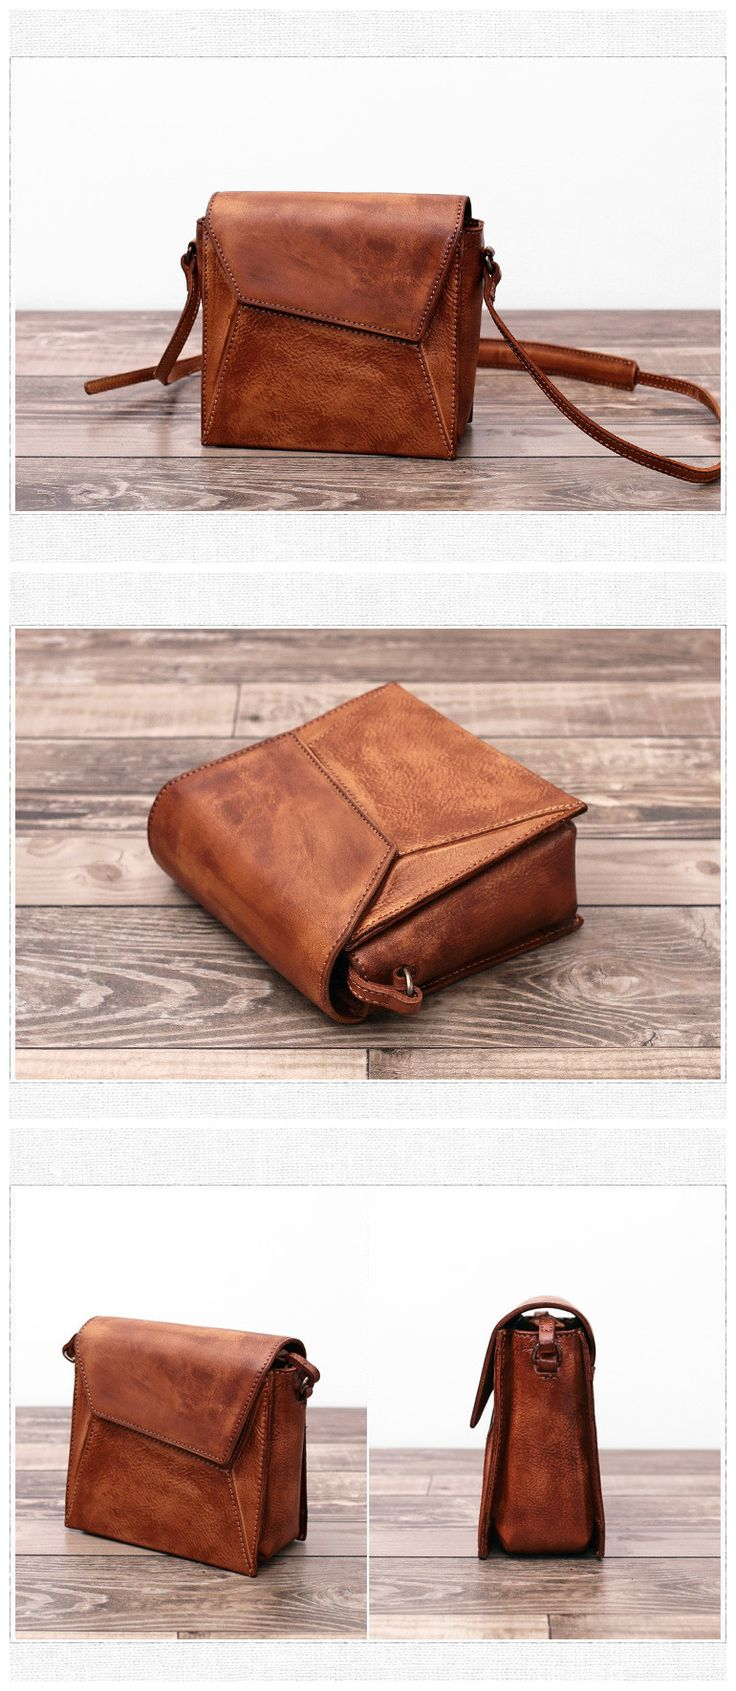 Full Grain Handmade Genuine Leather Small Messenger Bag Cross Body Bag We use genuine cow leather, quality hardware and nylon fabric to make the bag as good as it is. •Adjustable shoulder strap. •Insi